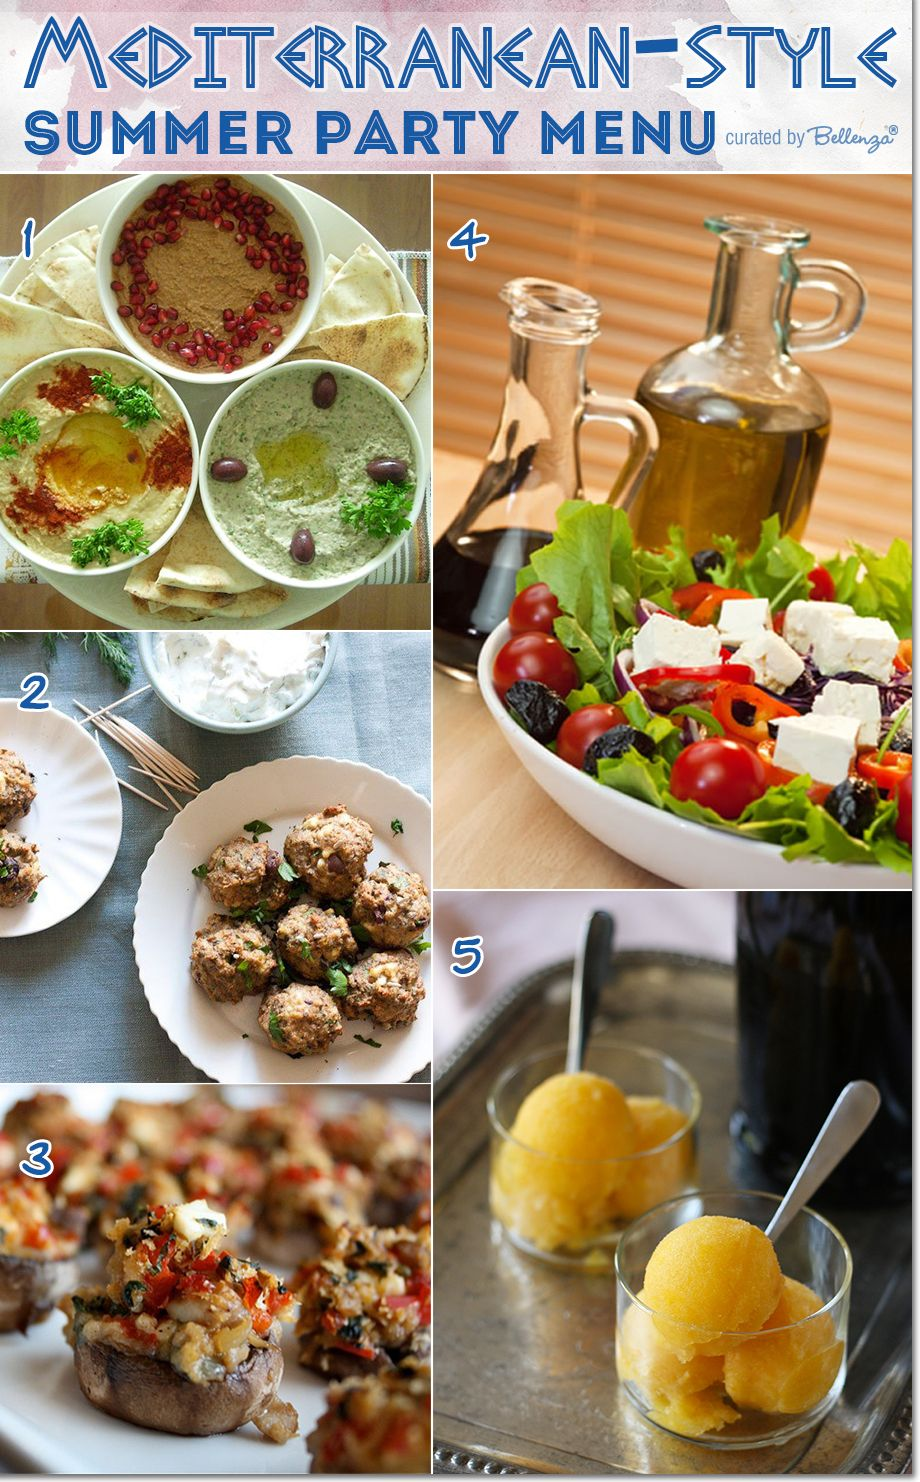 Menu ideas for hosting a mediterranean style summer party for Mediterranean food menu